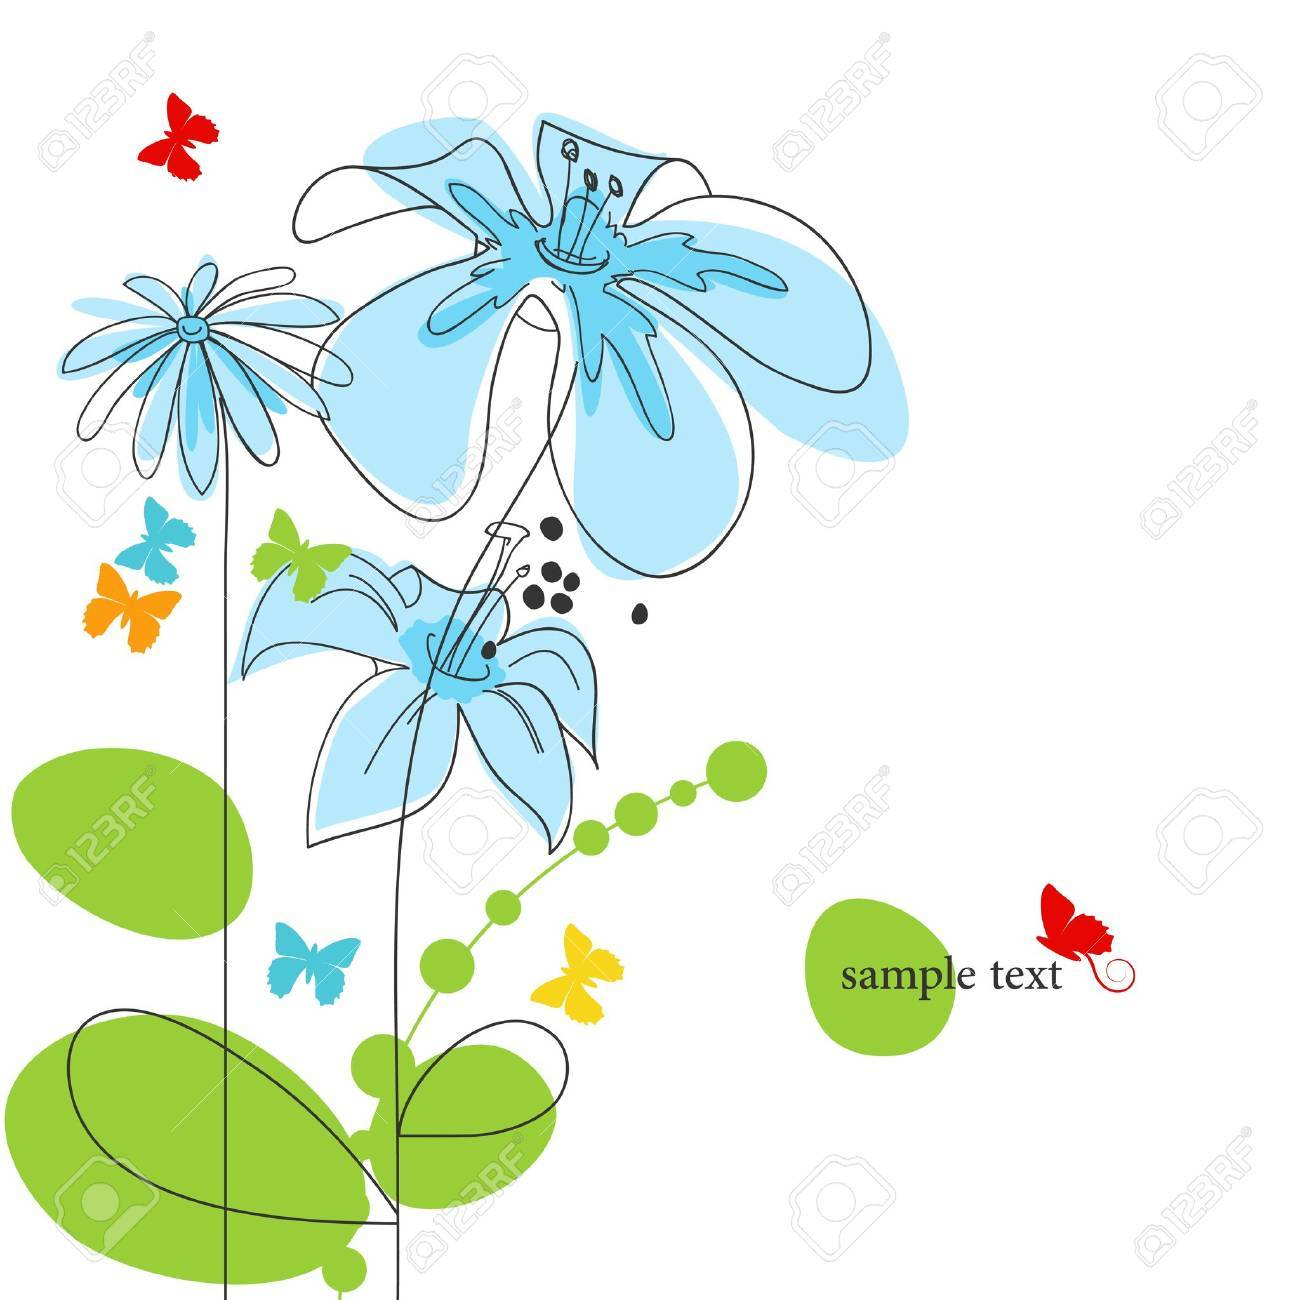 Floral background with butterflies Stock Vector - 12440428